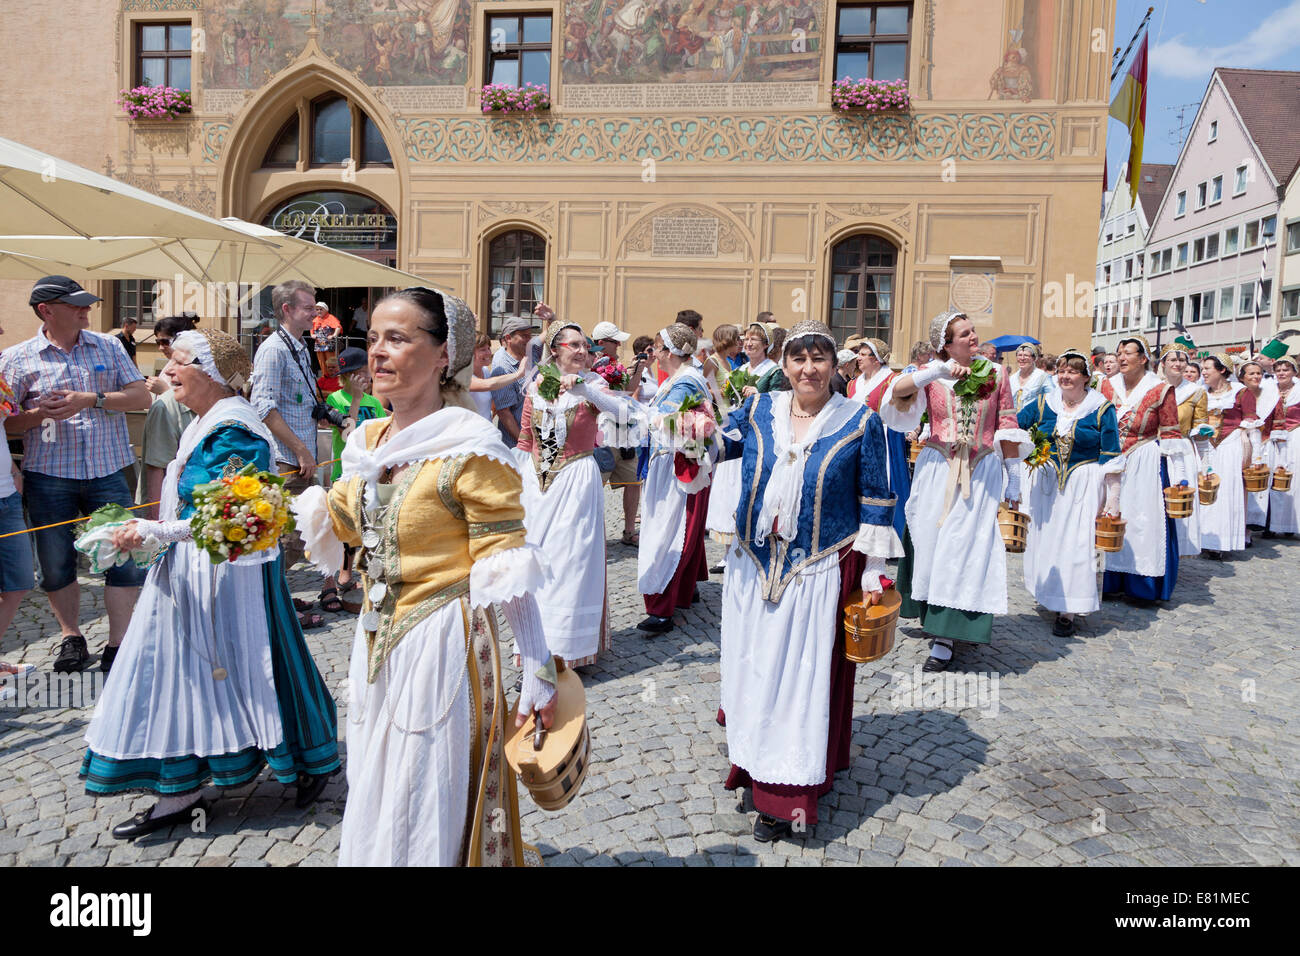 Fishermen's wives during a parade on Marktplatz square in front of the Town Hall, Fischerstechen or water jousting - Stock Image